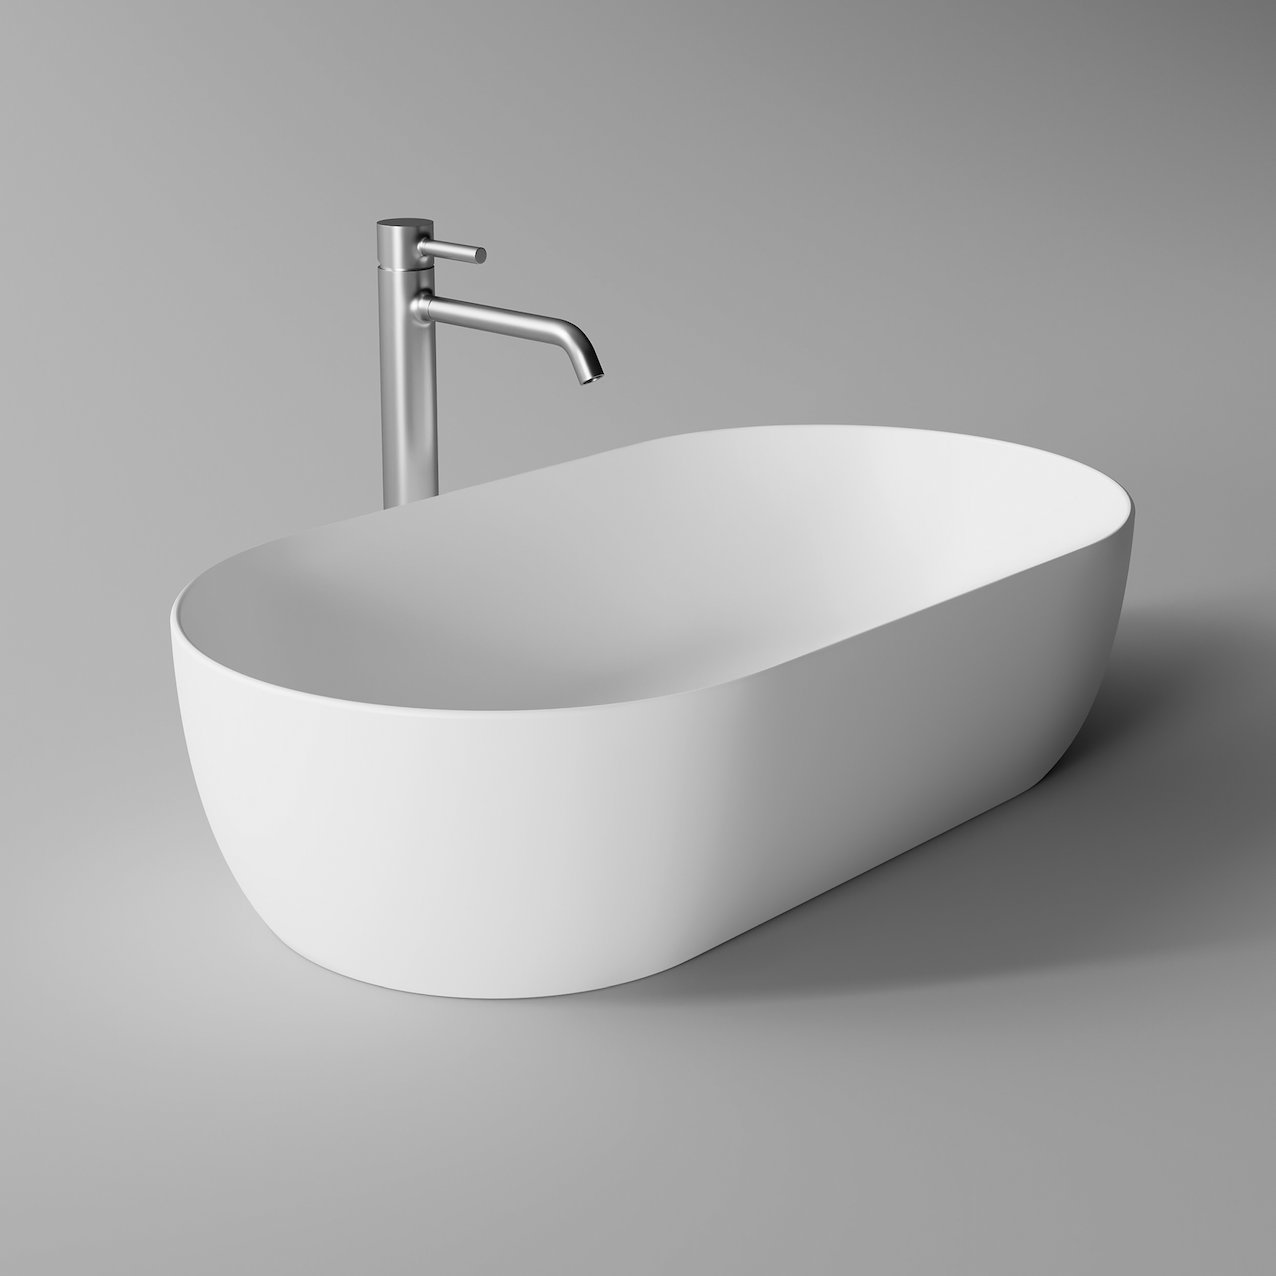 Washbasin UNICA oval 70